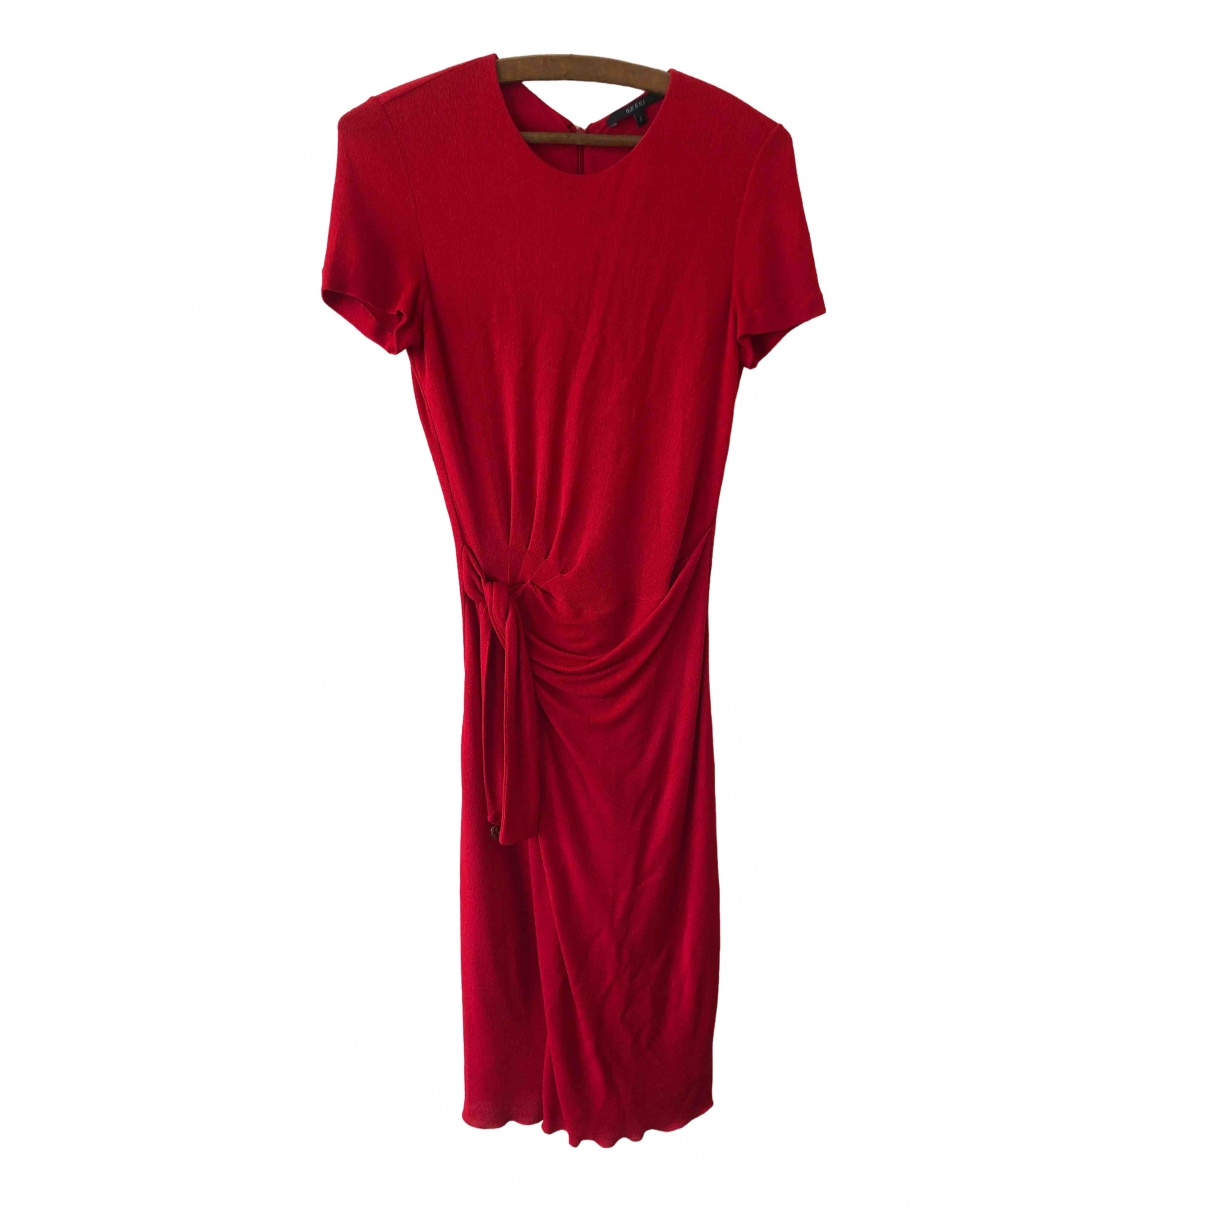 Gucci \N Red dress for Women S International